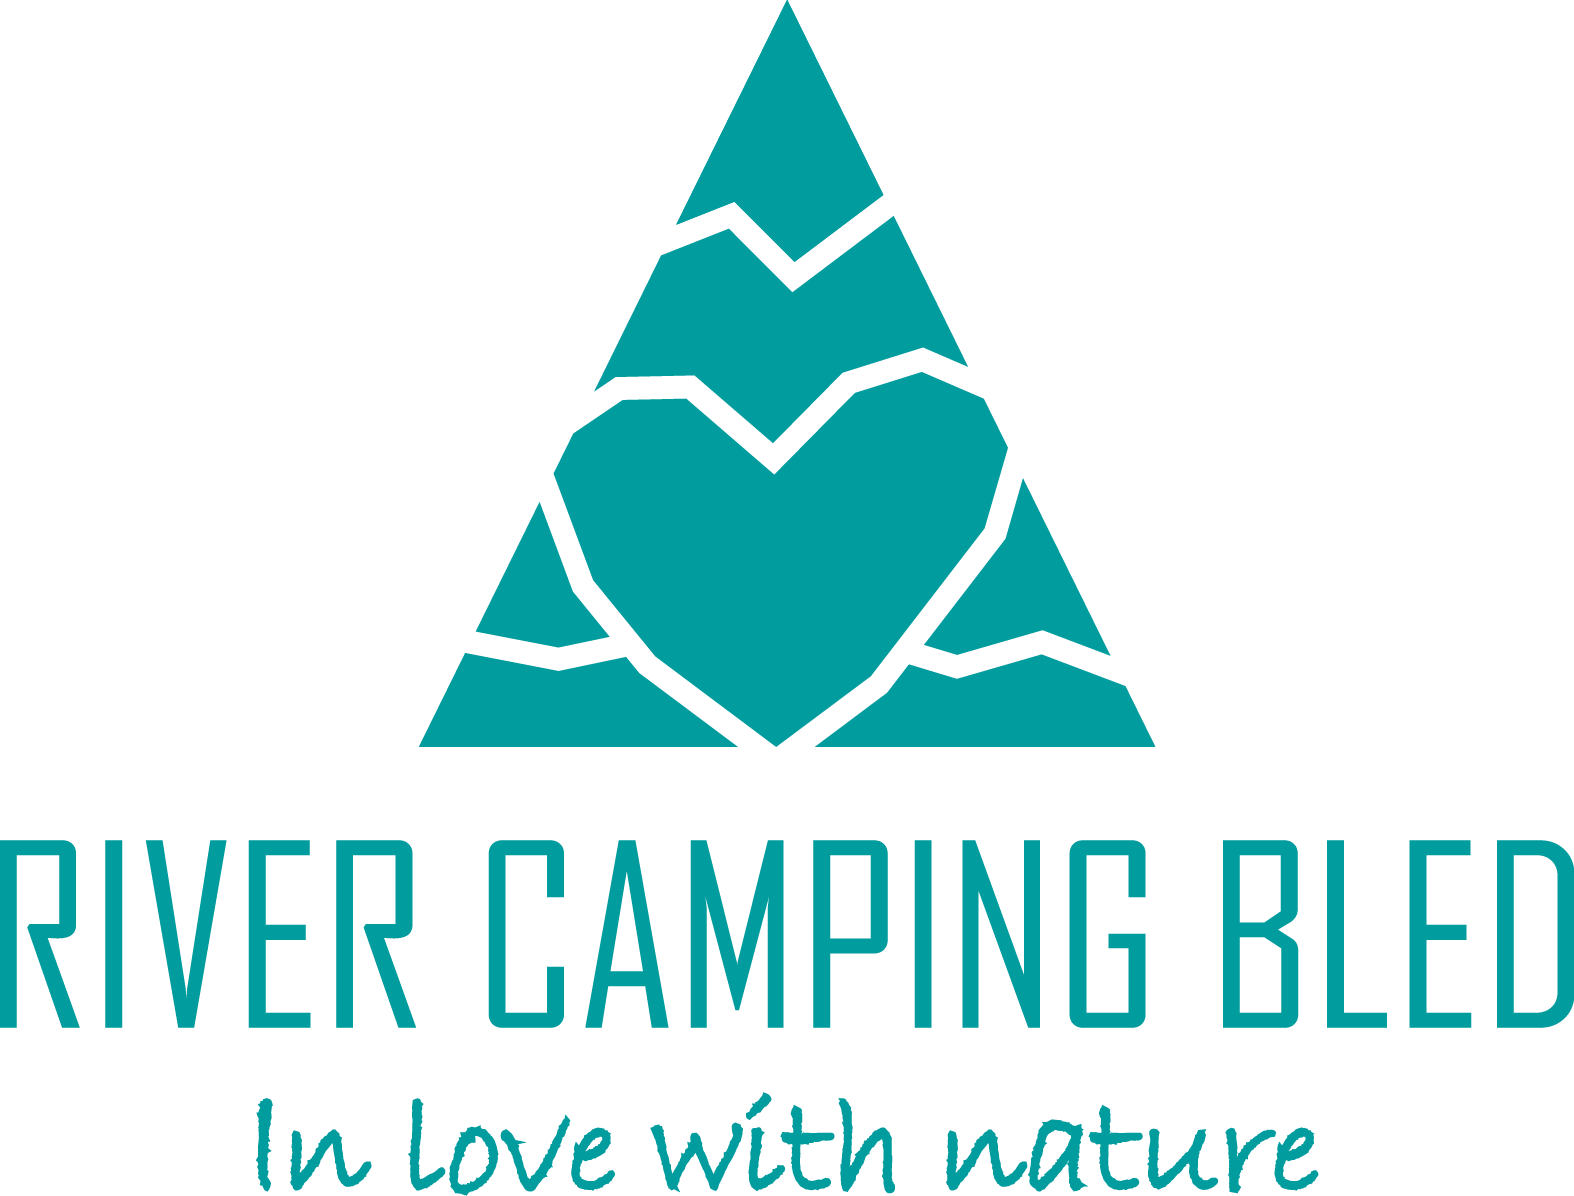 river_camping_bled_logo_singlecolor.png